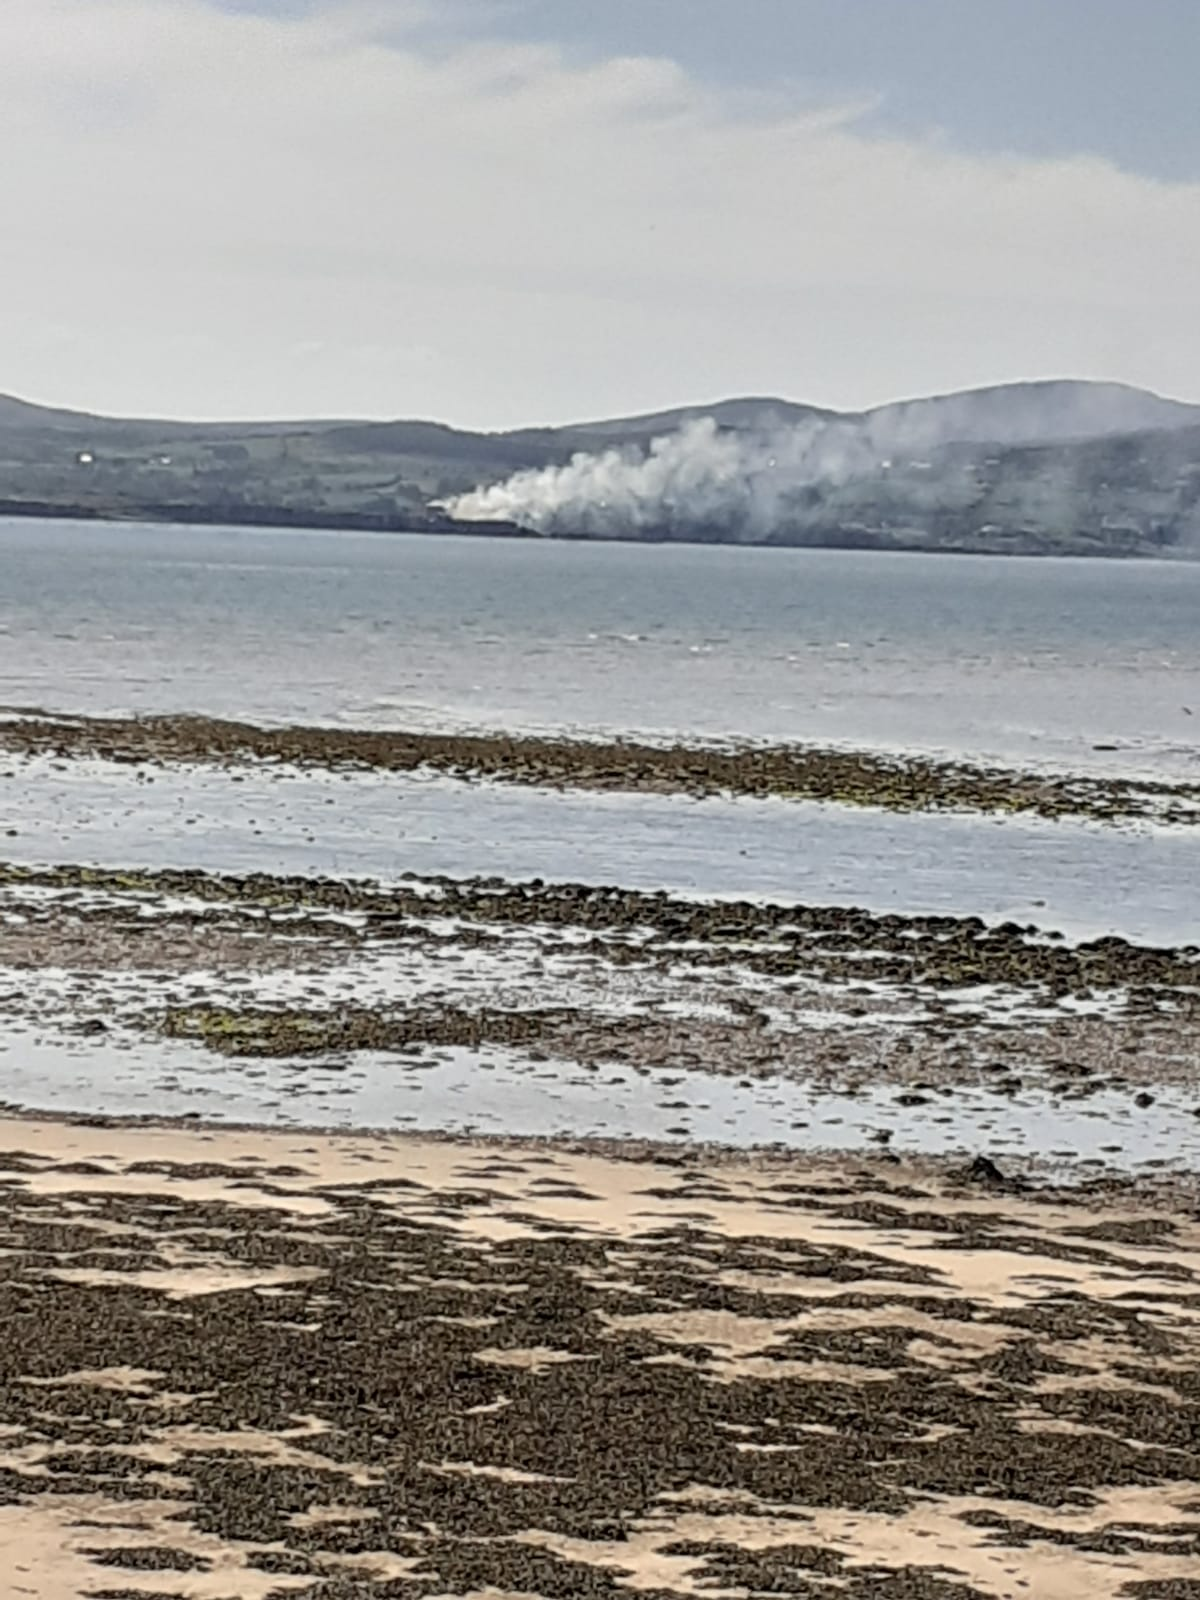 Fire at Macamish Fort as seen from Buncrana